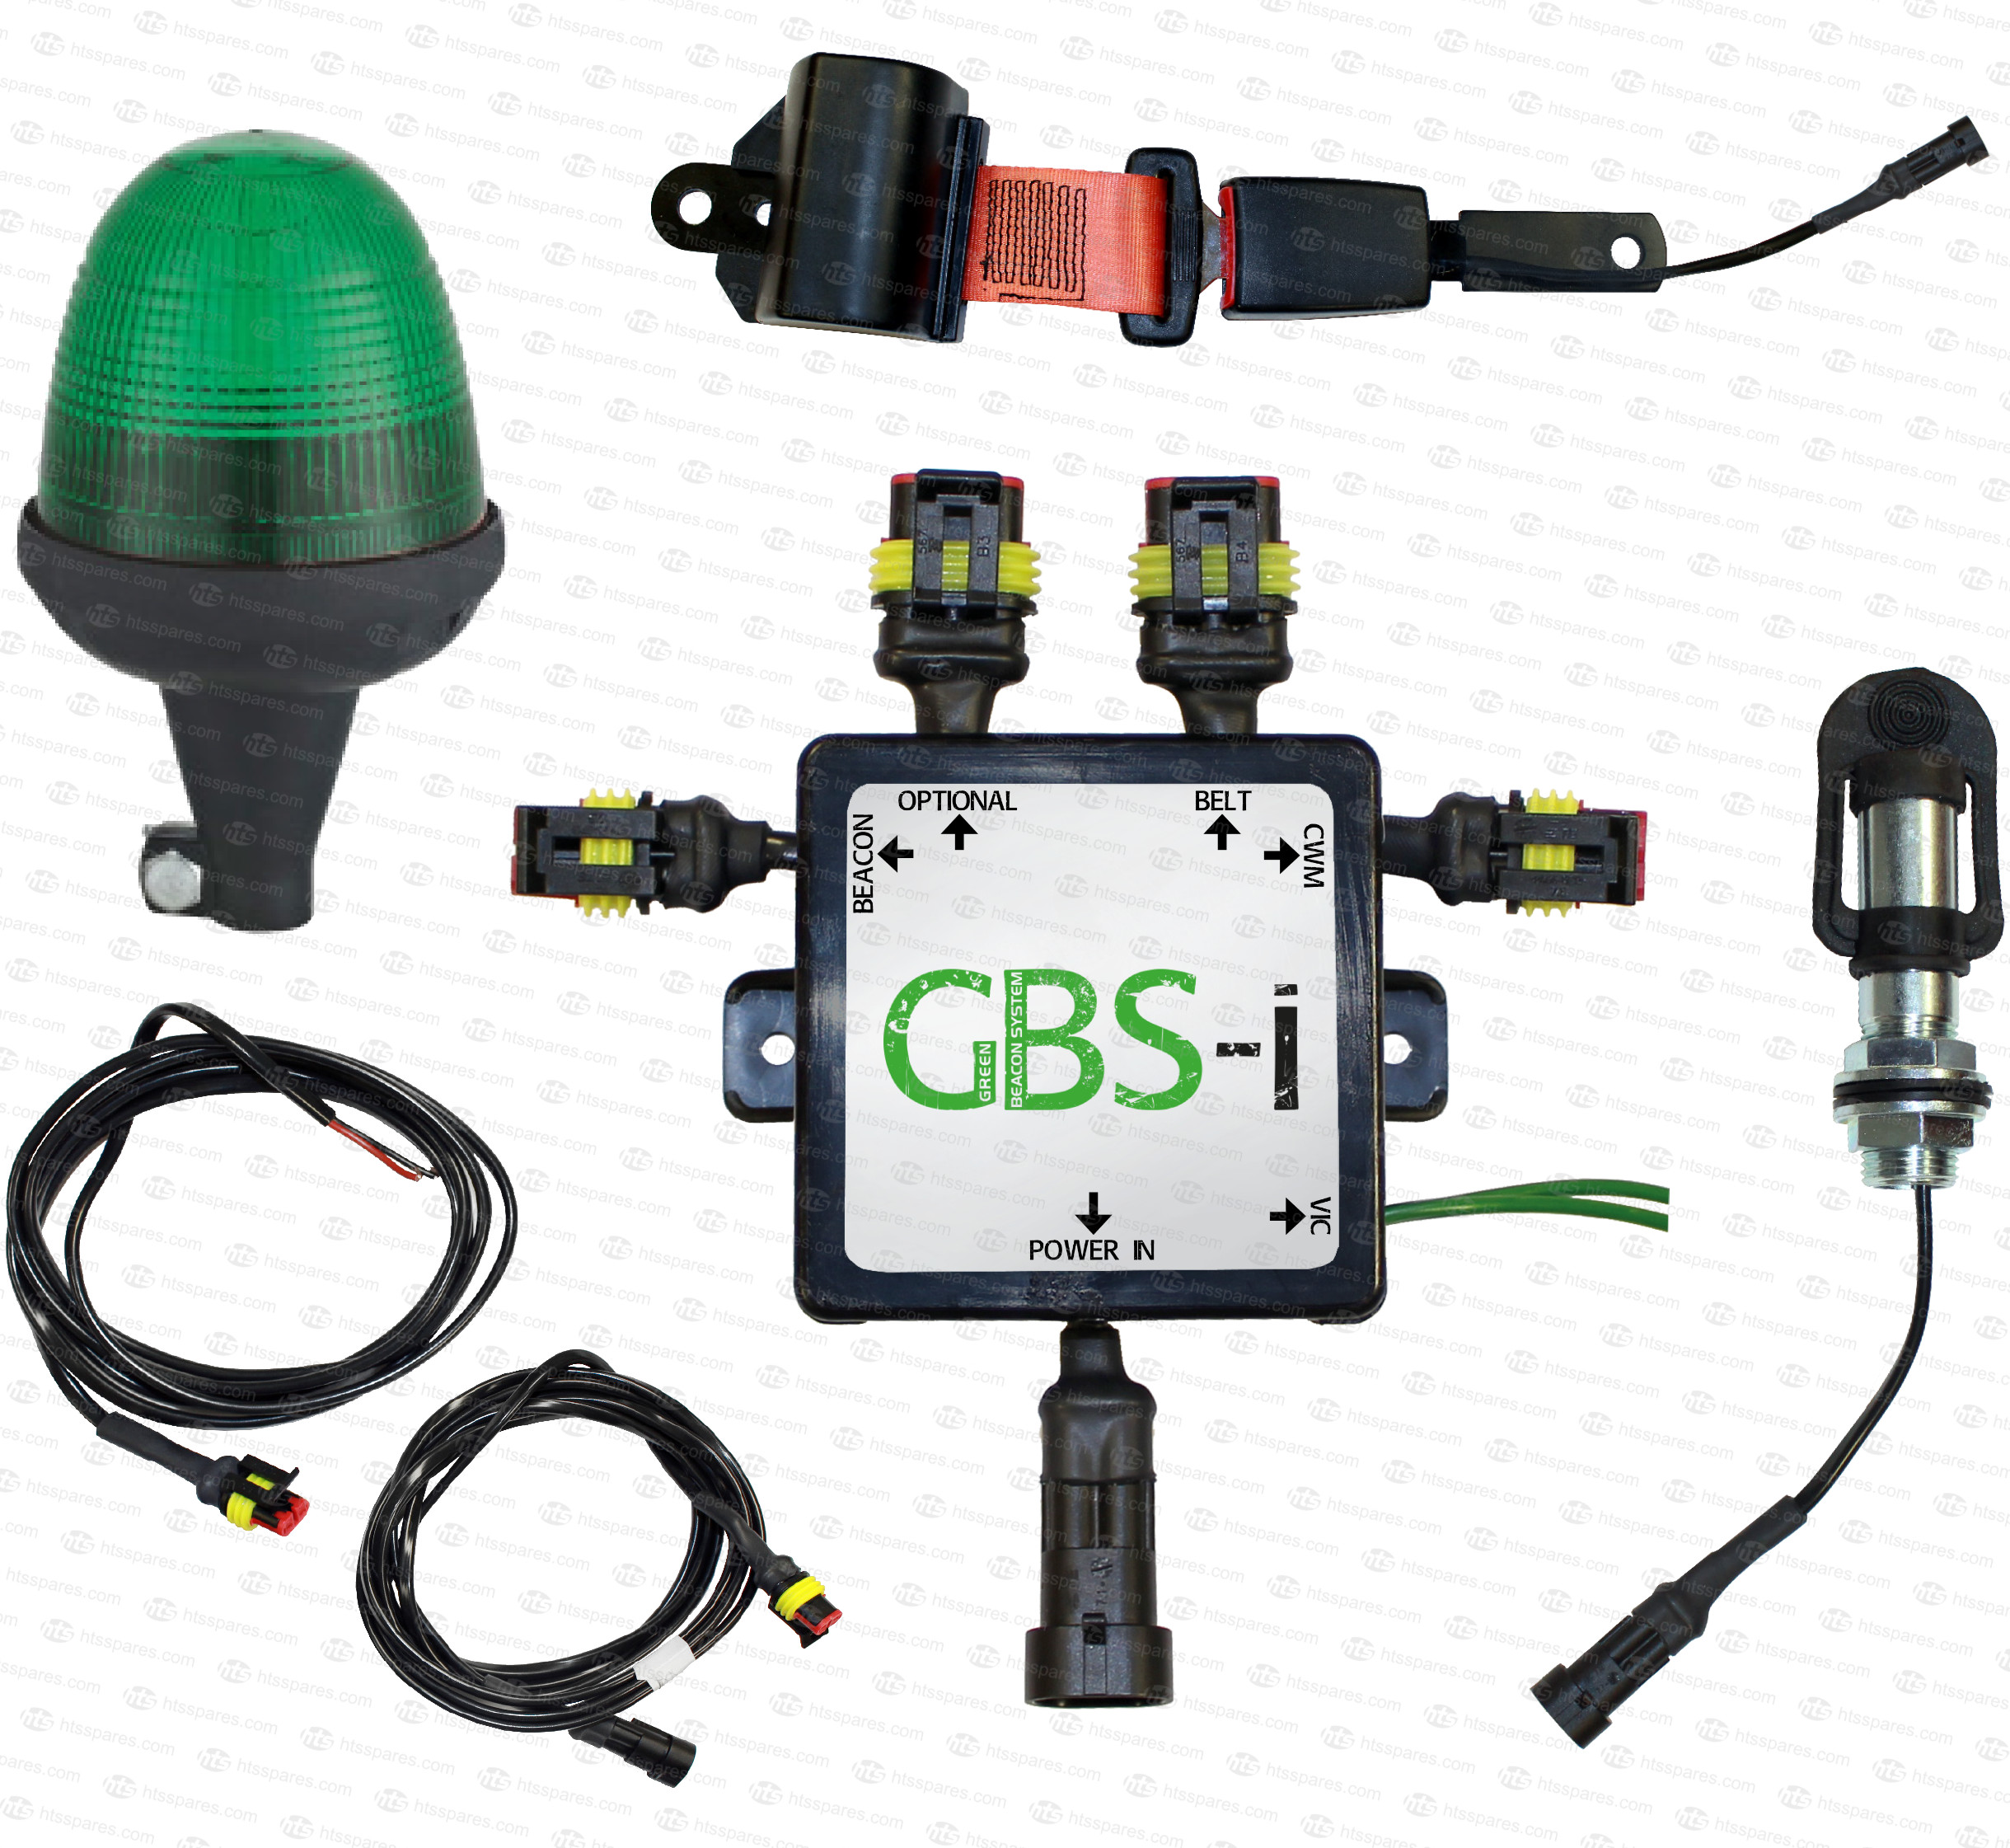 safety warning belt kit with green beacon \u0026 switched lap belt Naza Wiring Diagram gbs i green beacon system